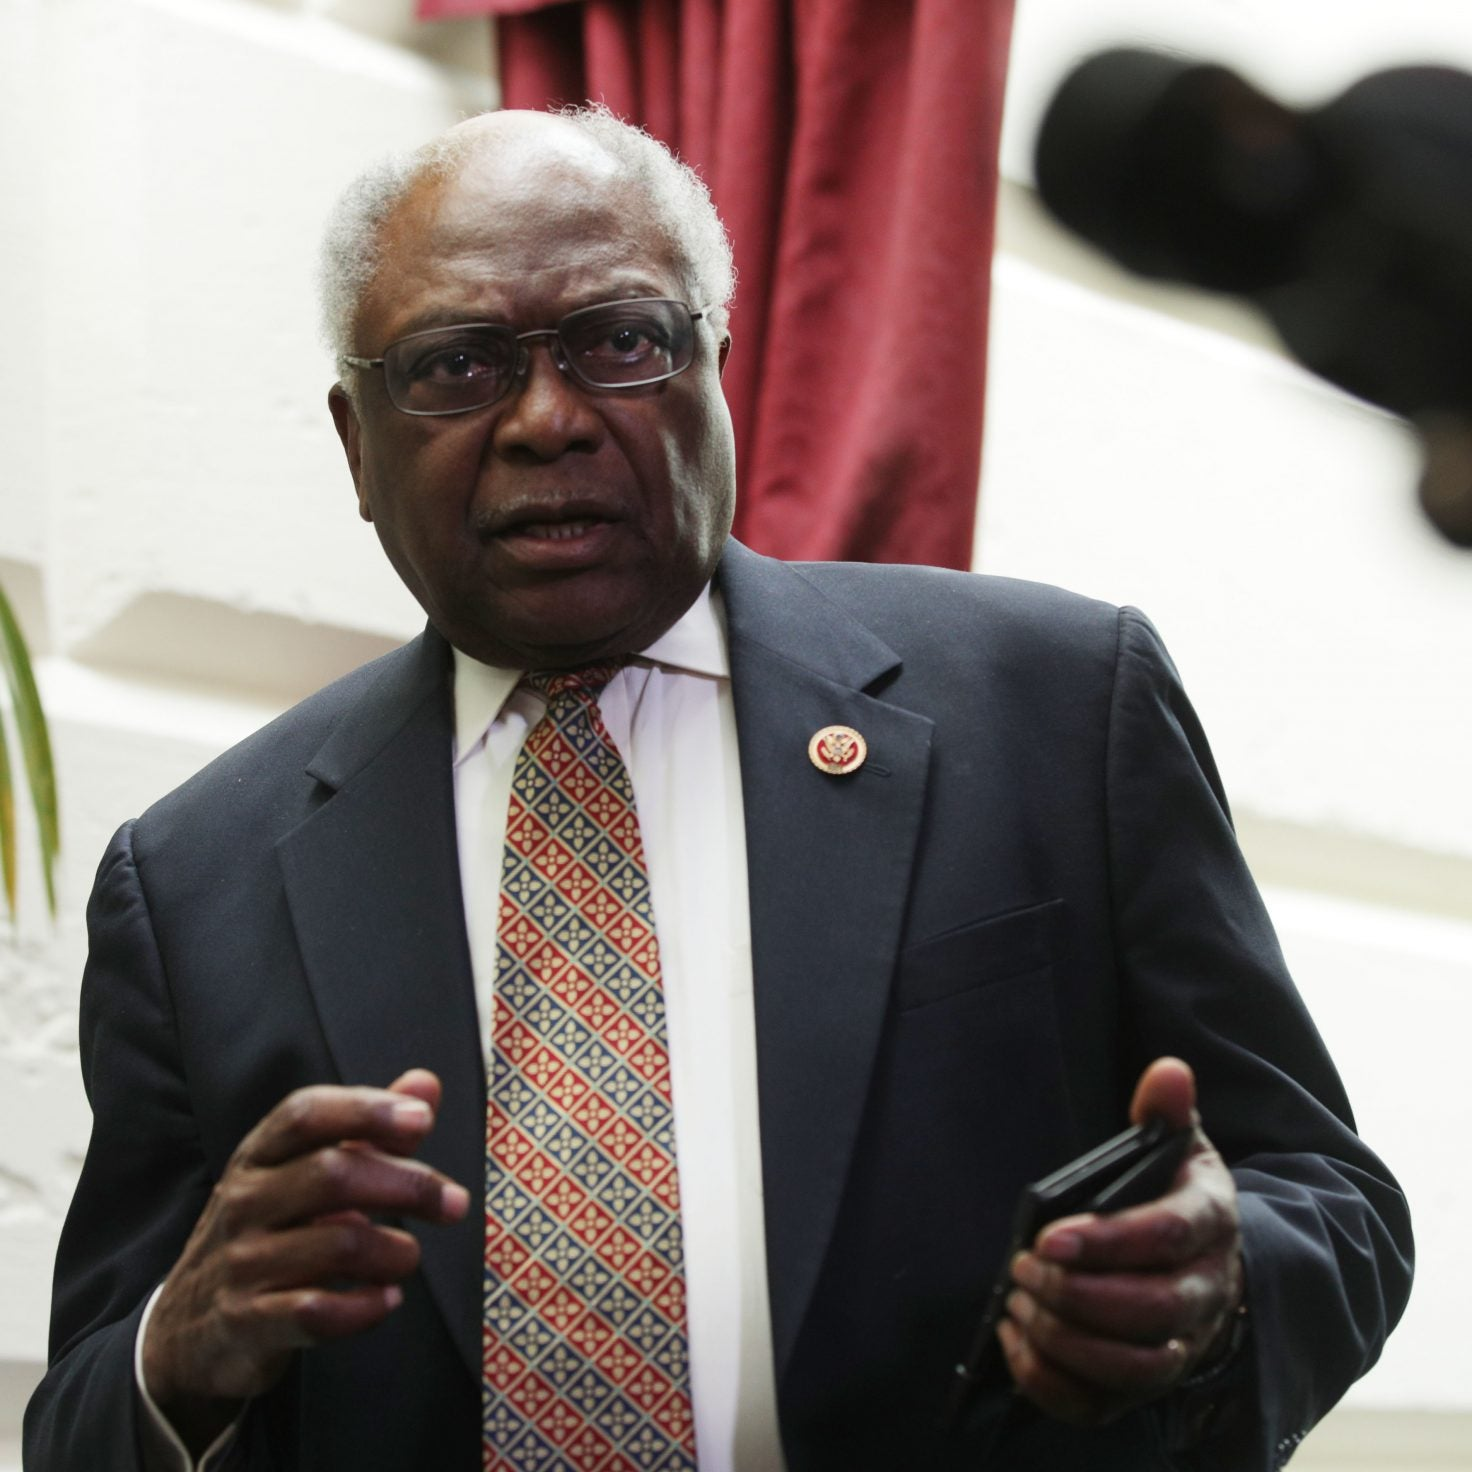 Rep. Jim Clyburn Expected To Make Endorsement Ahead Of SC Primary